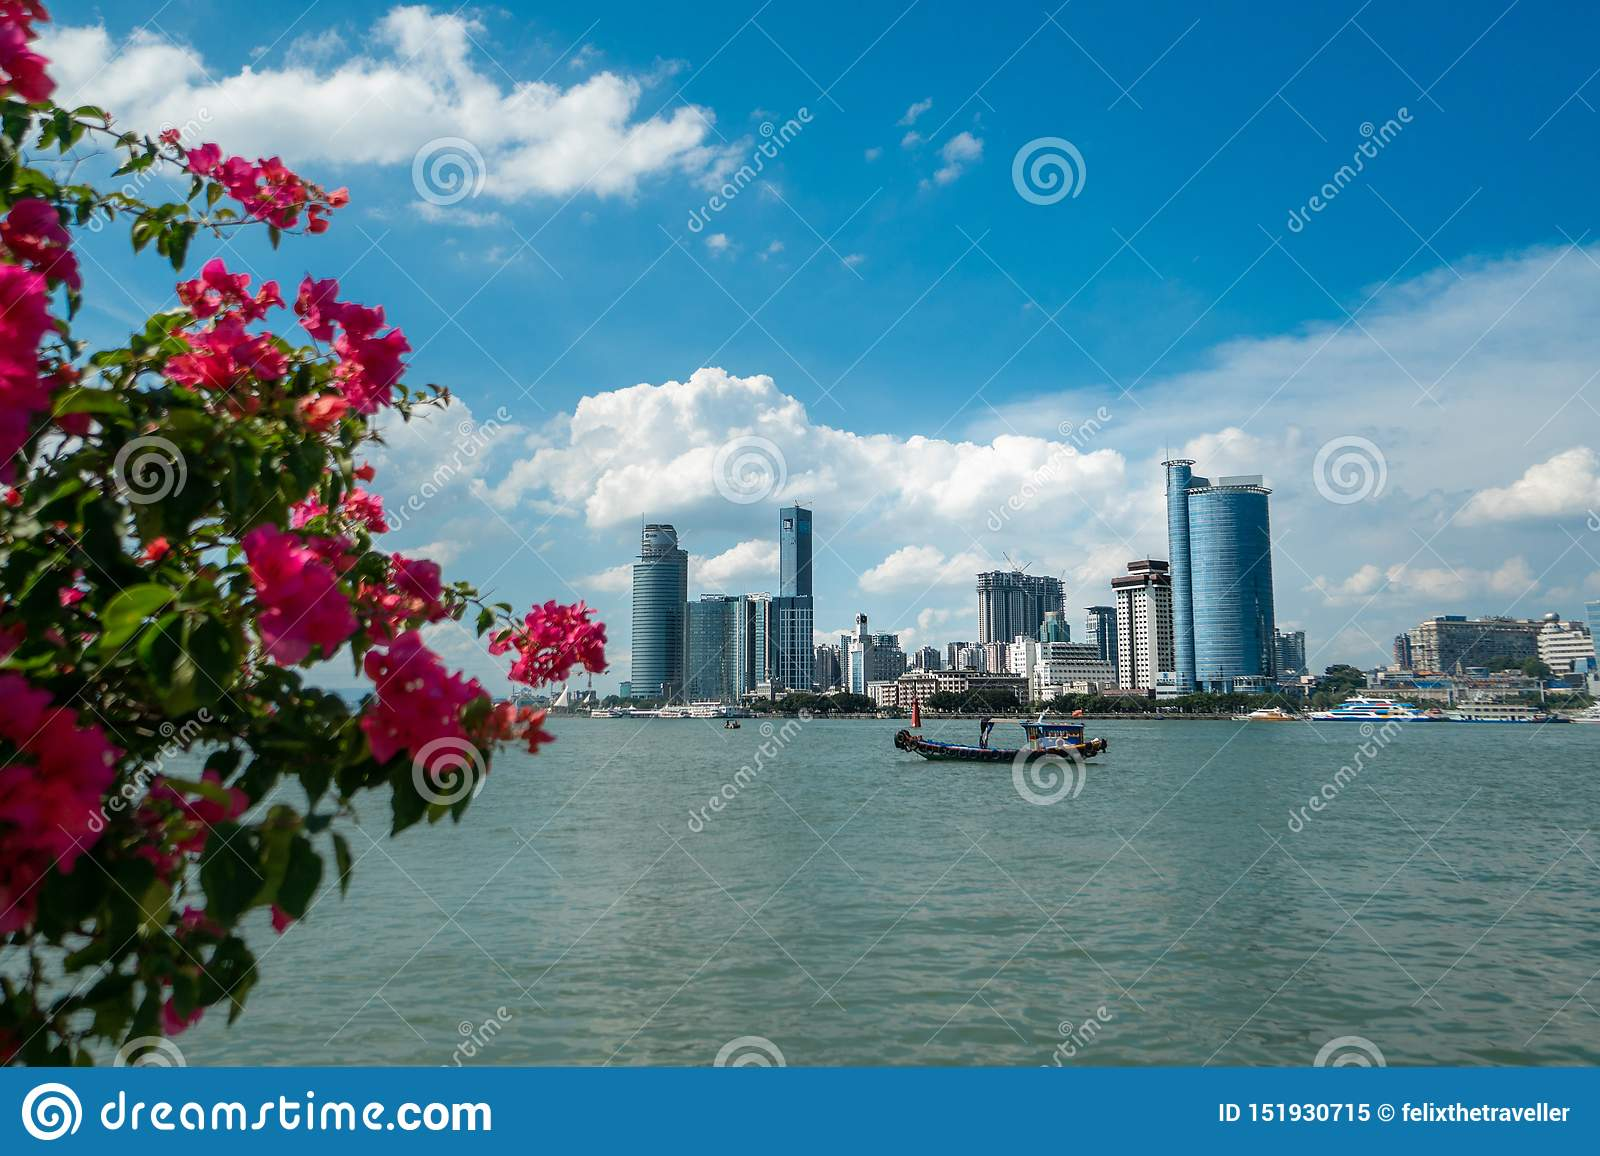 View on the Chinese city of Xiamen